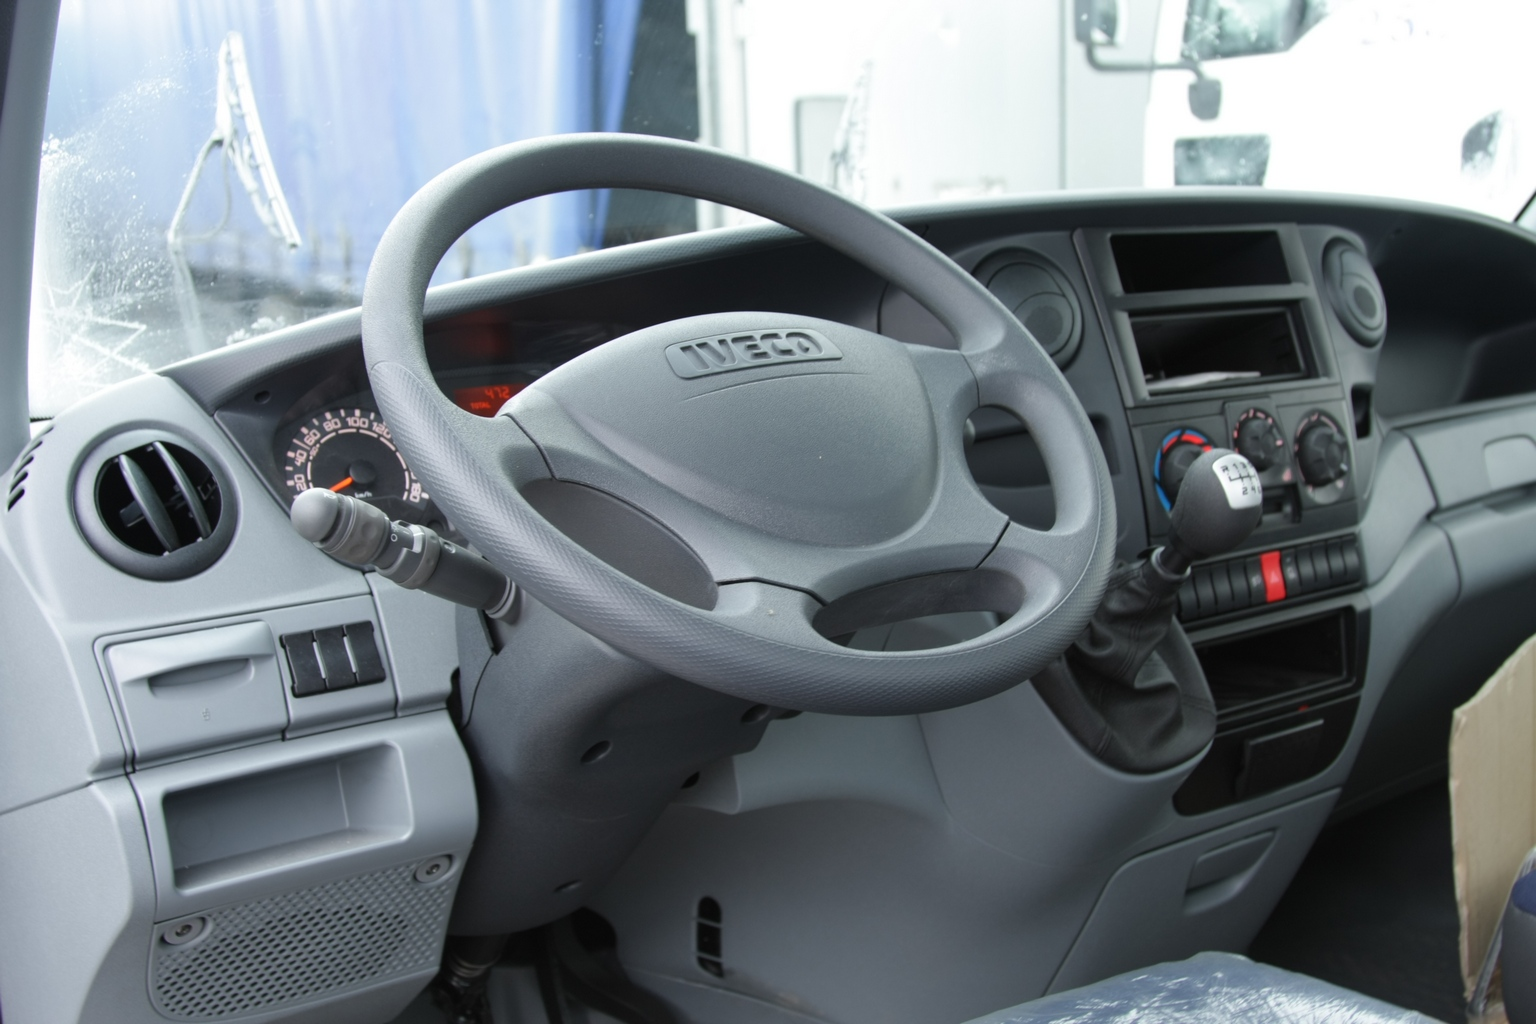 Iveco Daily - 1536 x 1024, 12 из 16